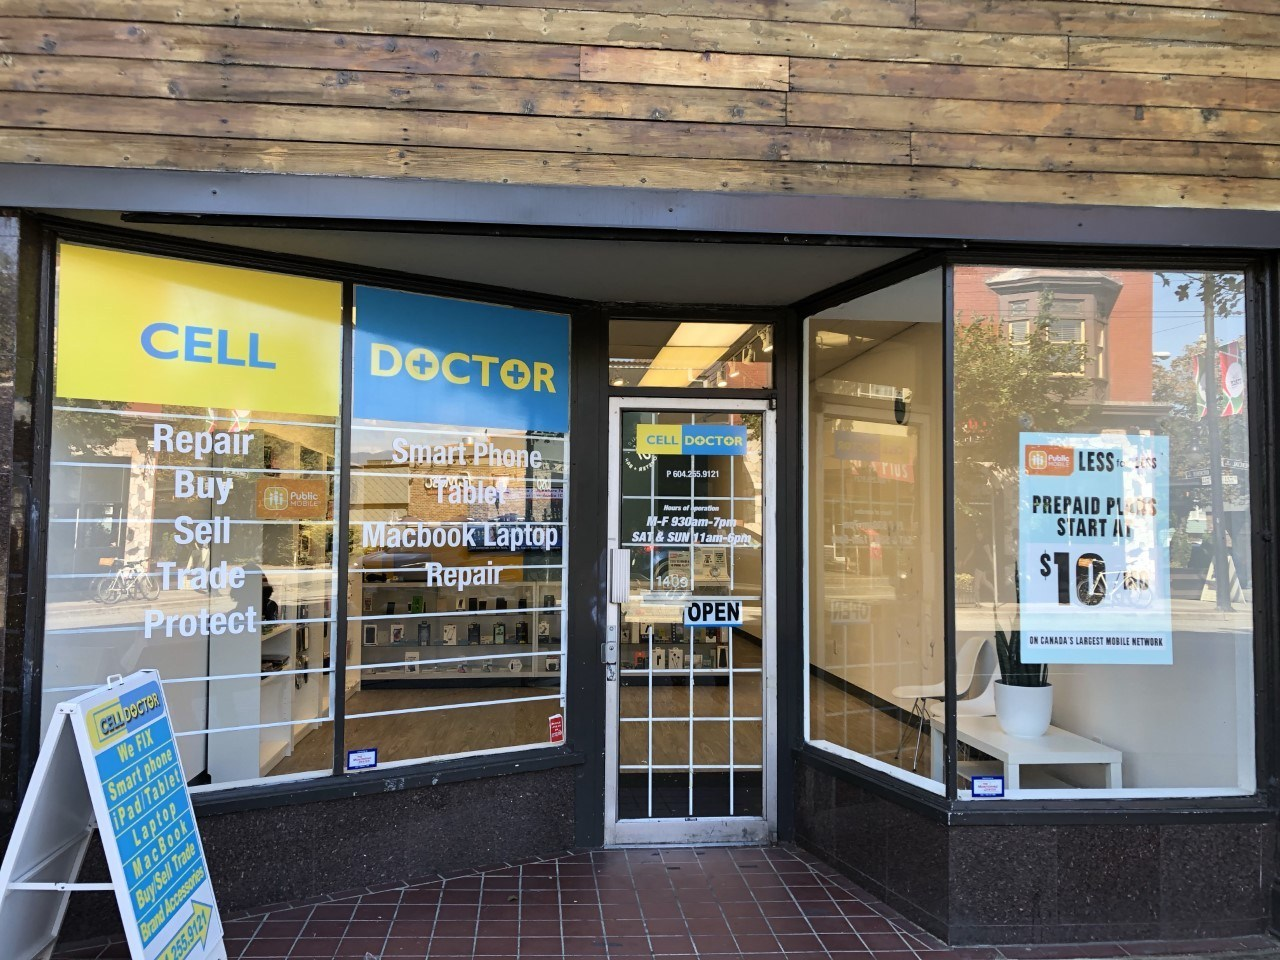 Cell Doctor Store front